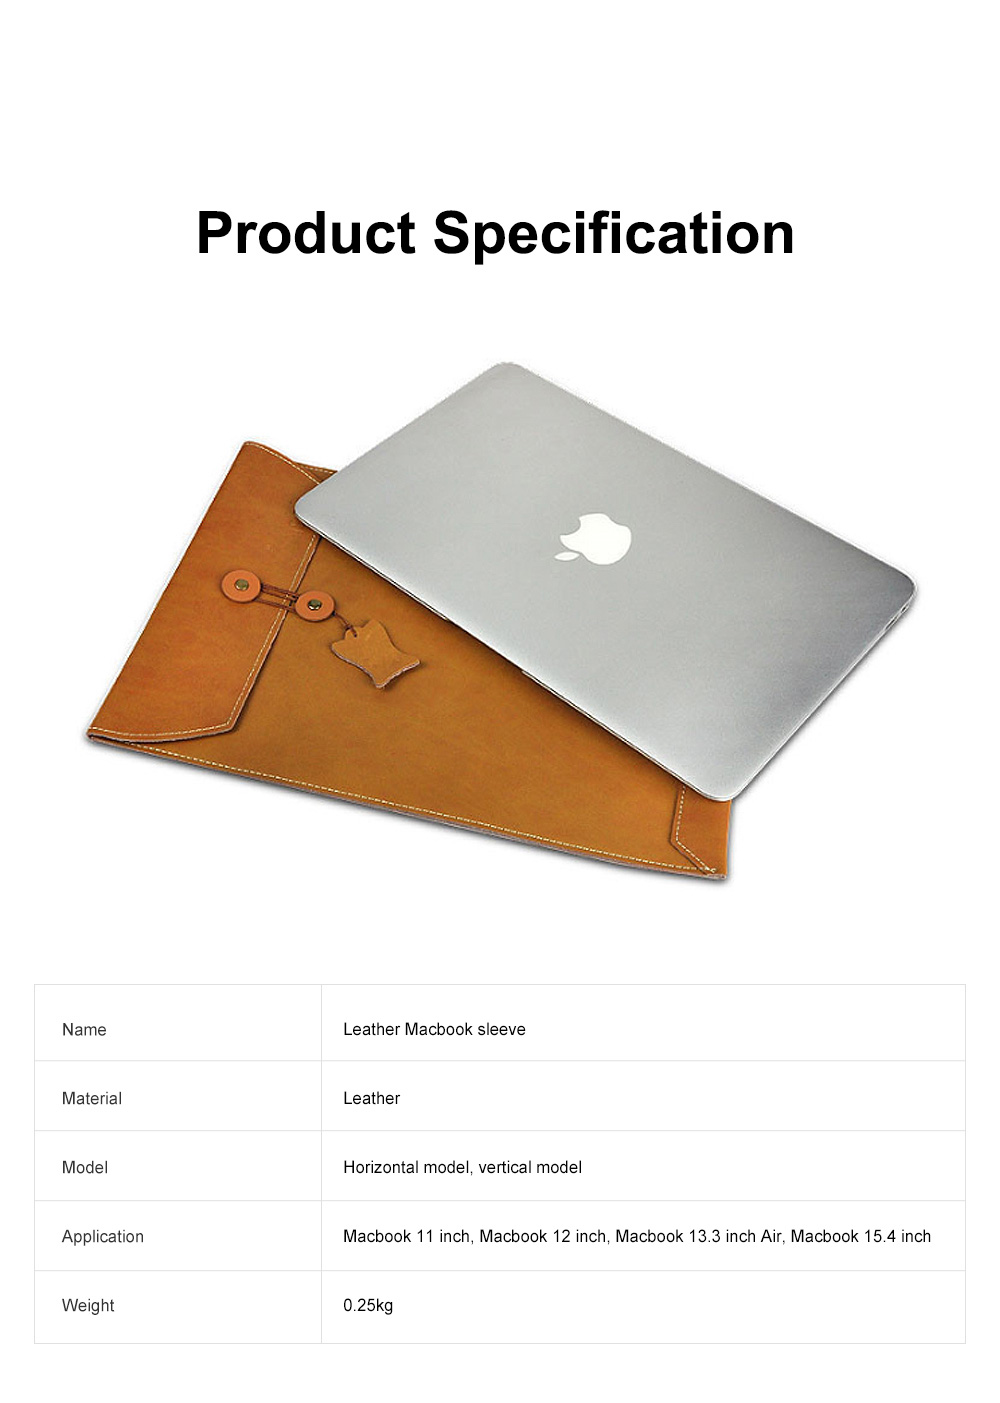 Soft Scratching-proof Leather Macbook Bag Pouch, Envelop Model Laptop Protective Cover for Macbook 11inch 12inch 13.3inch Air 15.4inch 7